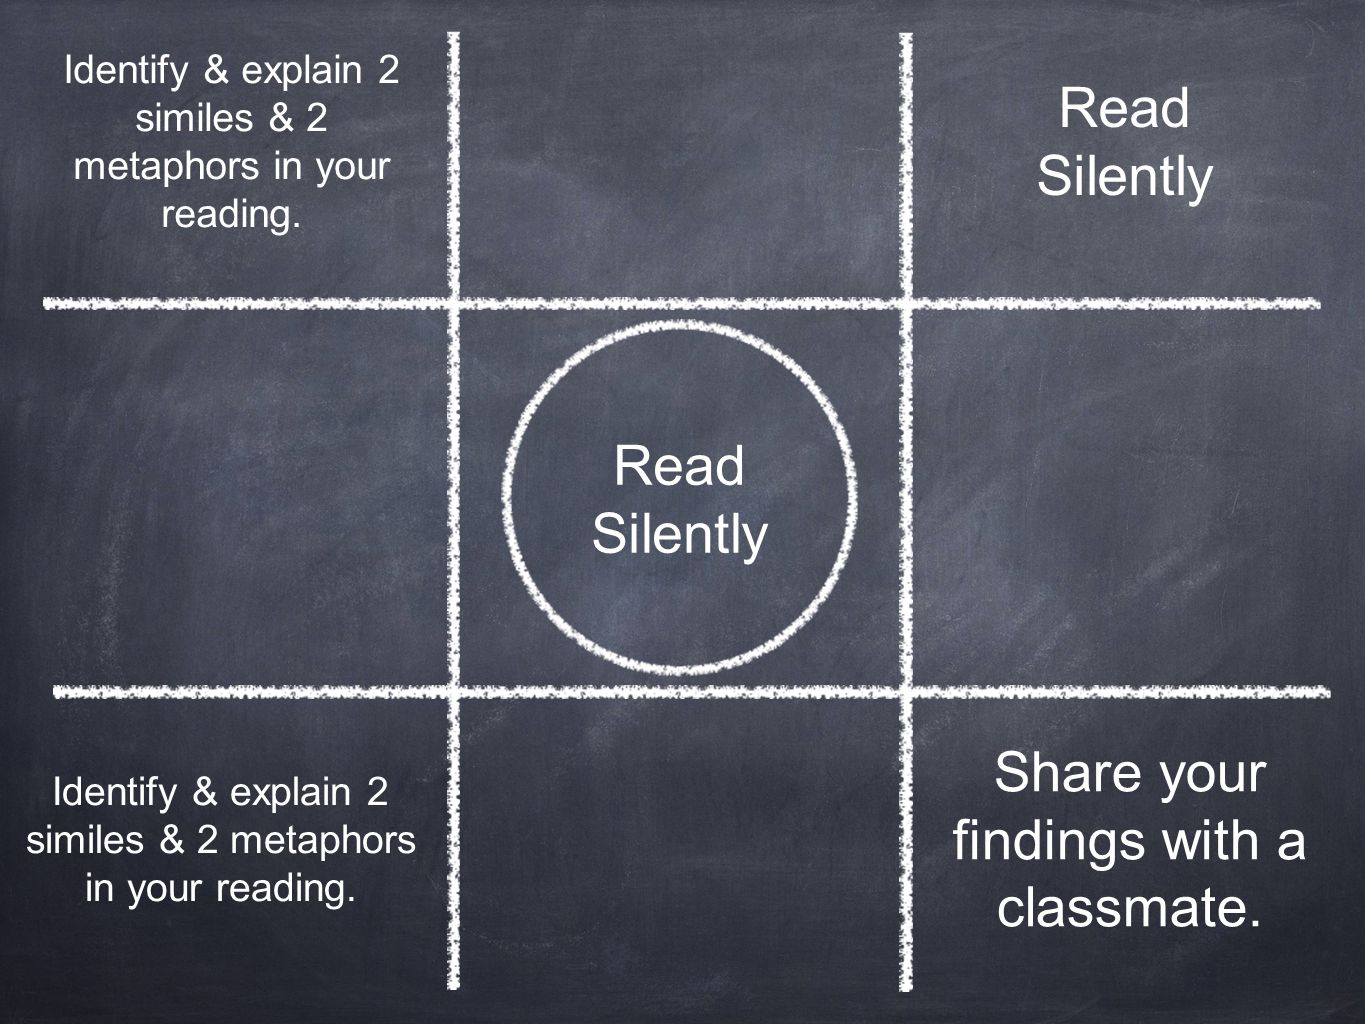 Read Silently Identify & explain 2 similes & 2 metaphors in your reading. Share your findings with a classmate. Read Silently